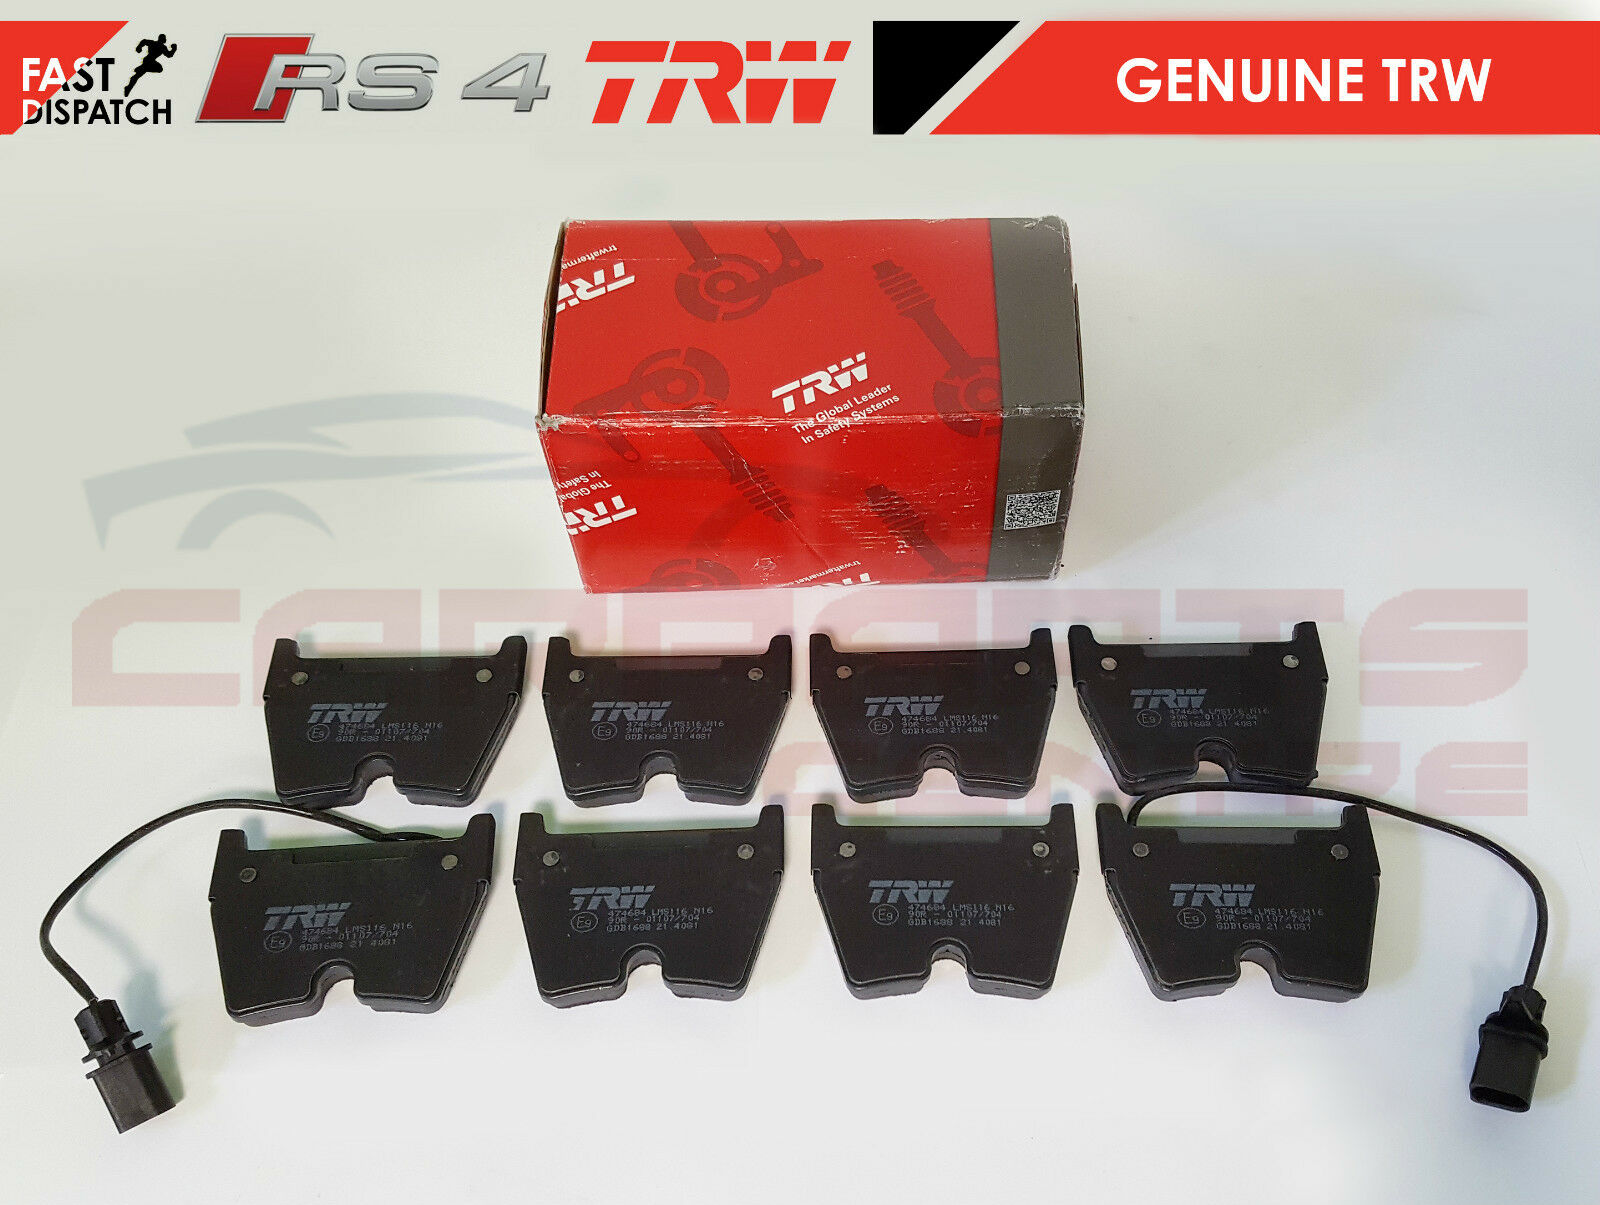 FOR AUDI B7 RS4 FRONT REAR PREMIUM QUALITY PD BRAKE PADS SET 2004-2008 BRAND NEW